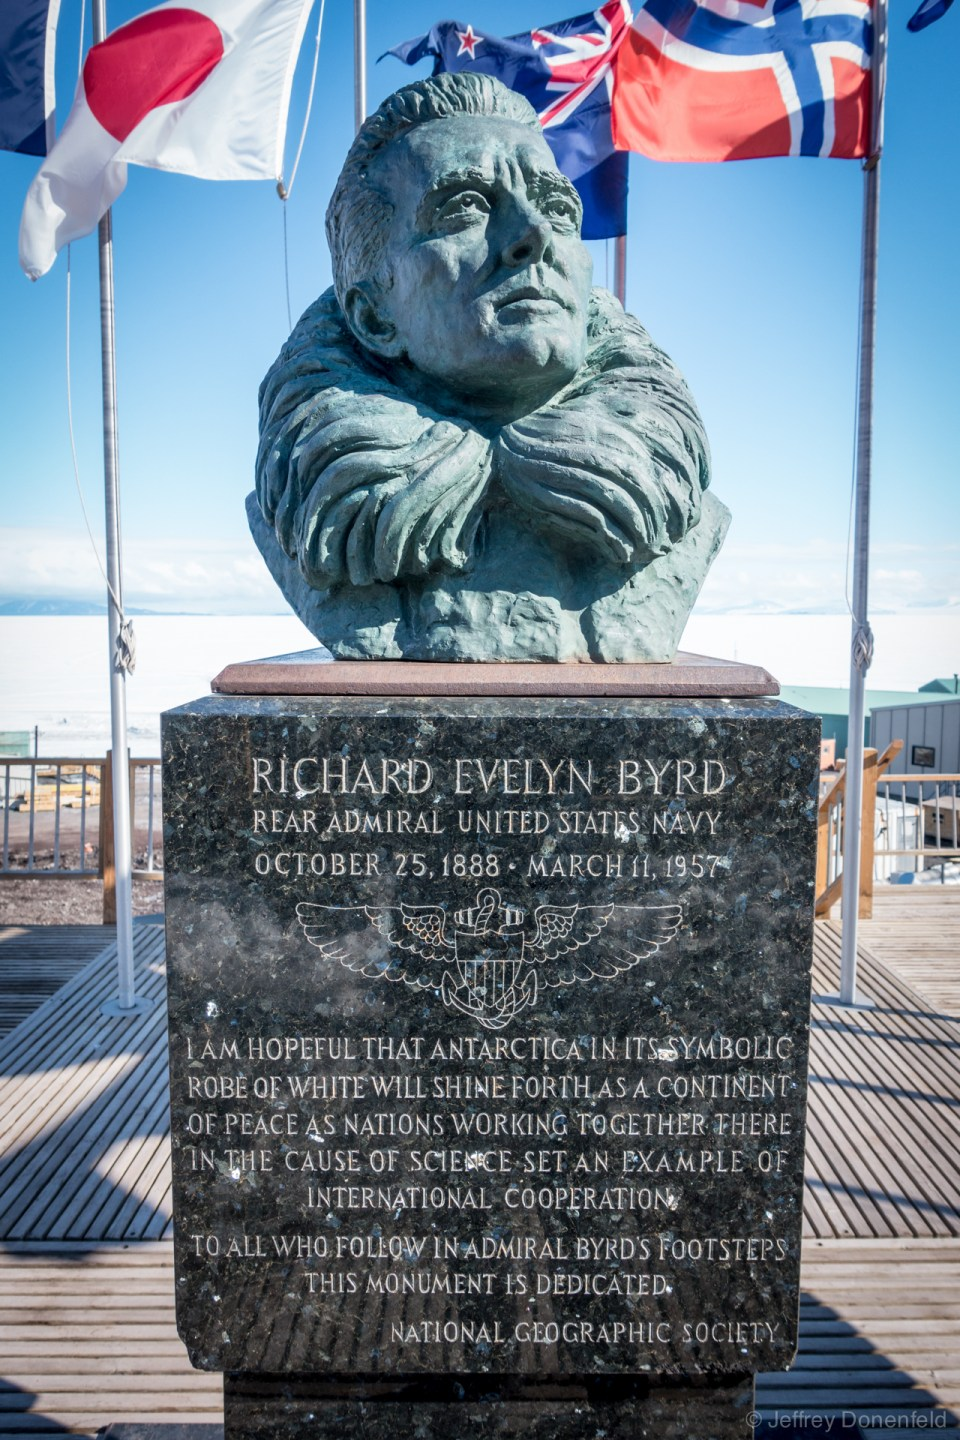 "The bust of Richard Evelyn Byrd, Rear Admiral, United States Navy, displayed centrally on the back deck of the chalet. The inscription reads: ""I am hopeful that antarctica in its cymbolic robe of white will shine forth as a continent of peas as nations working together there in the cause of science set an example of international cooperation. To all who follow in admiral byrd's footsteps this monument is dedicated. - National Geographic Society"""